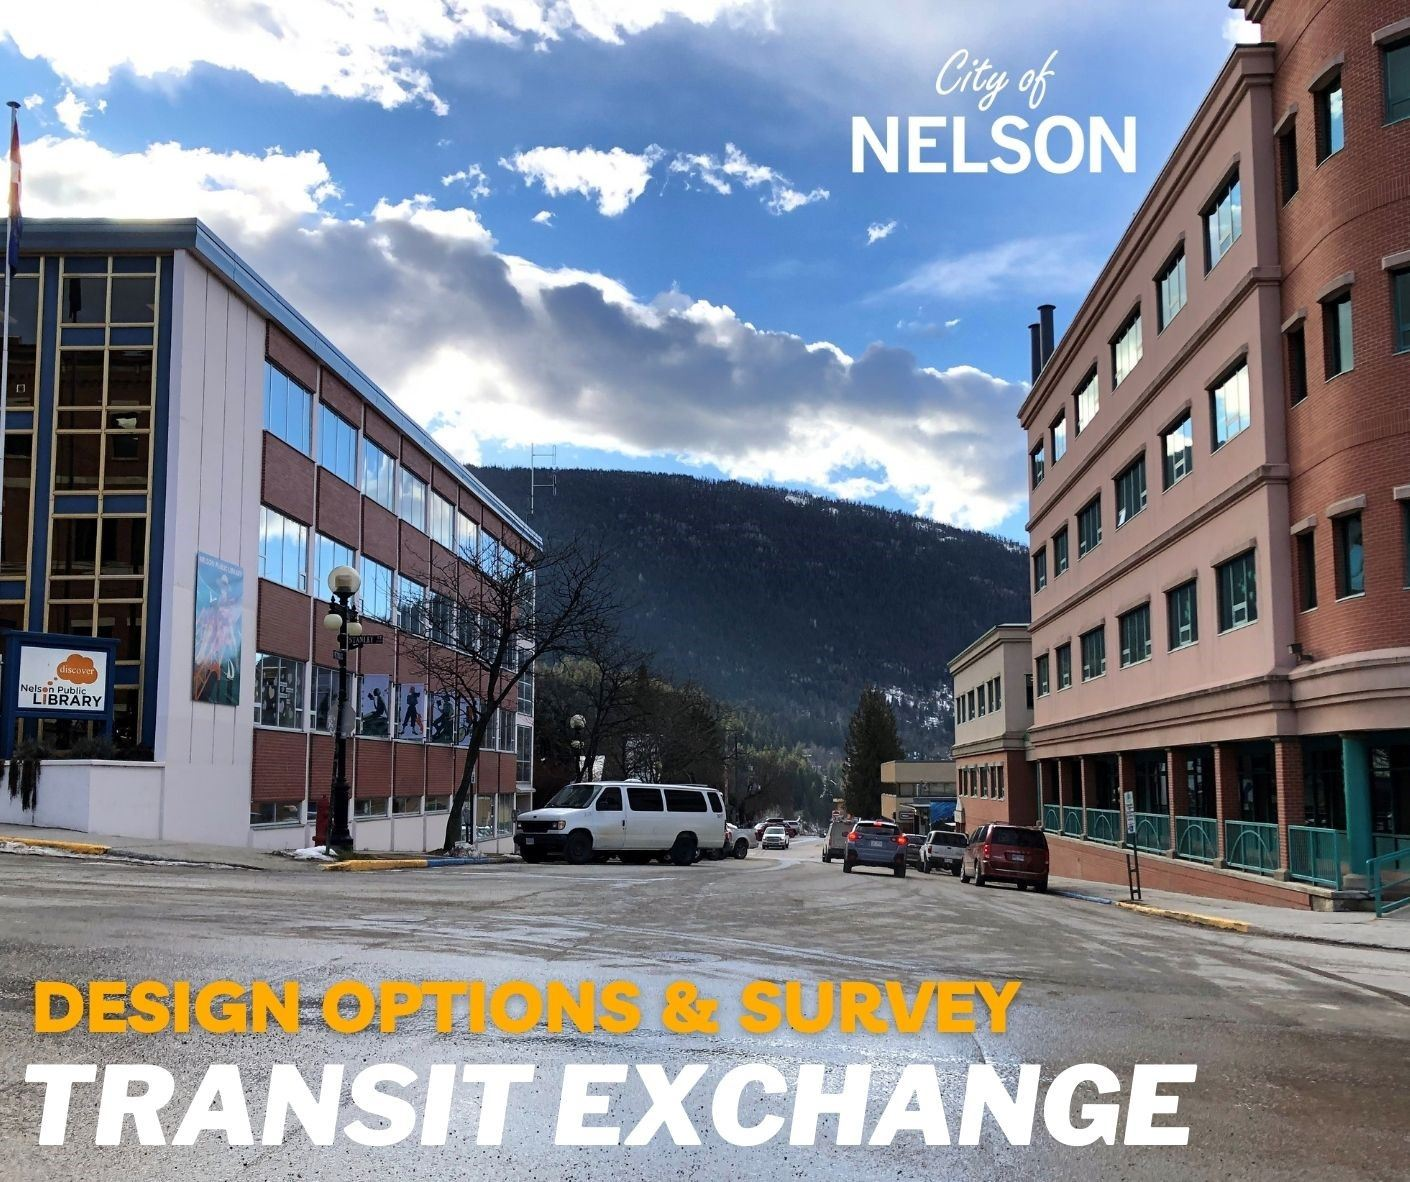 Transit Exchange Facebook